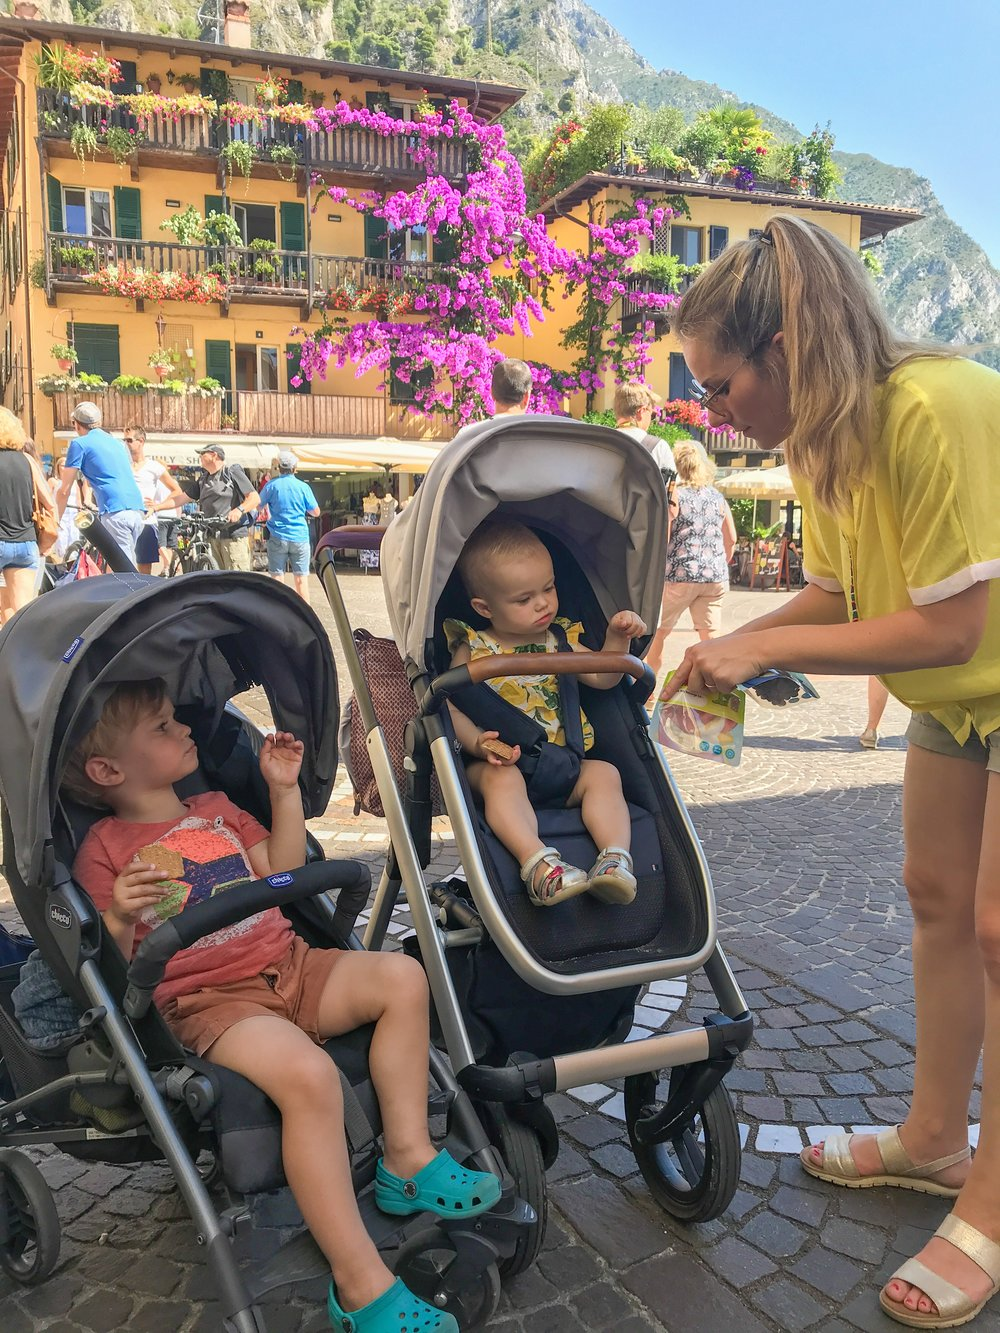 On a day trip to Limone sul Garda, Italy.